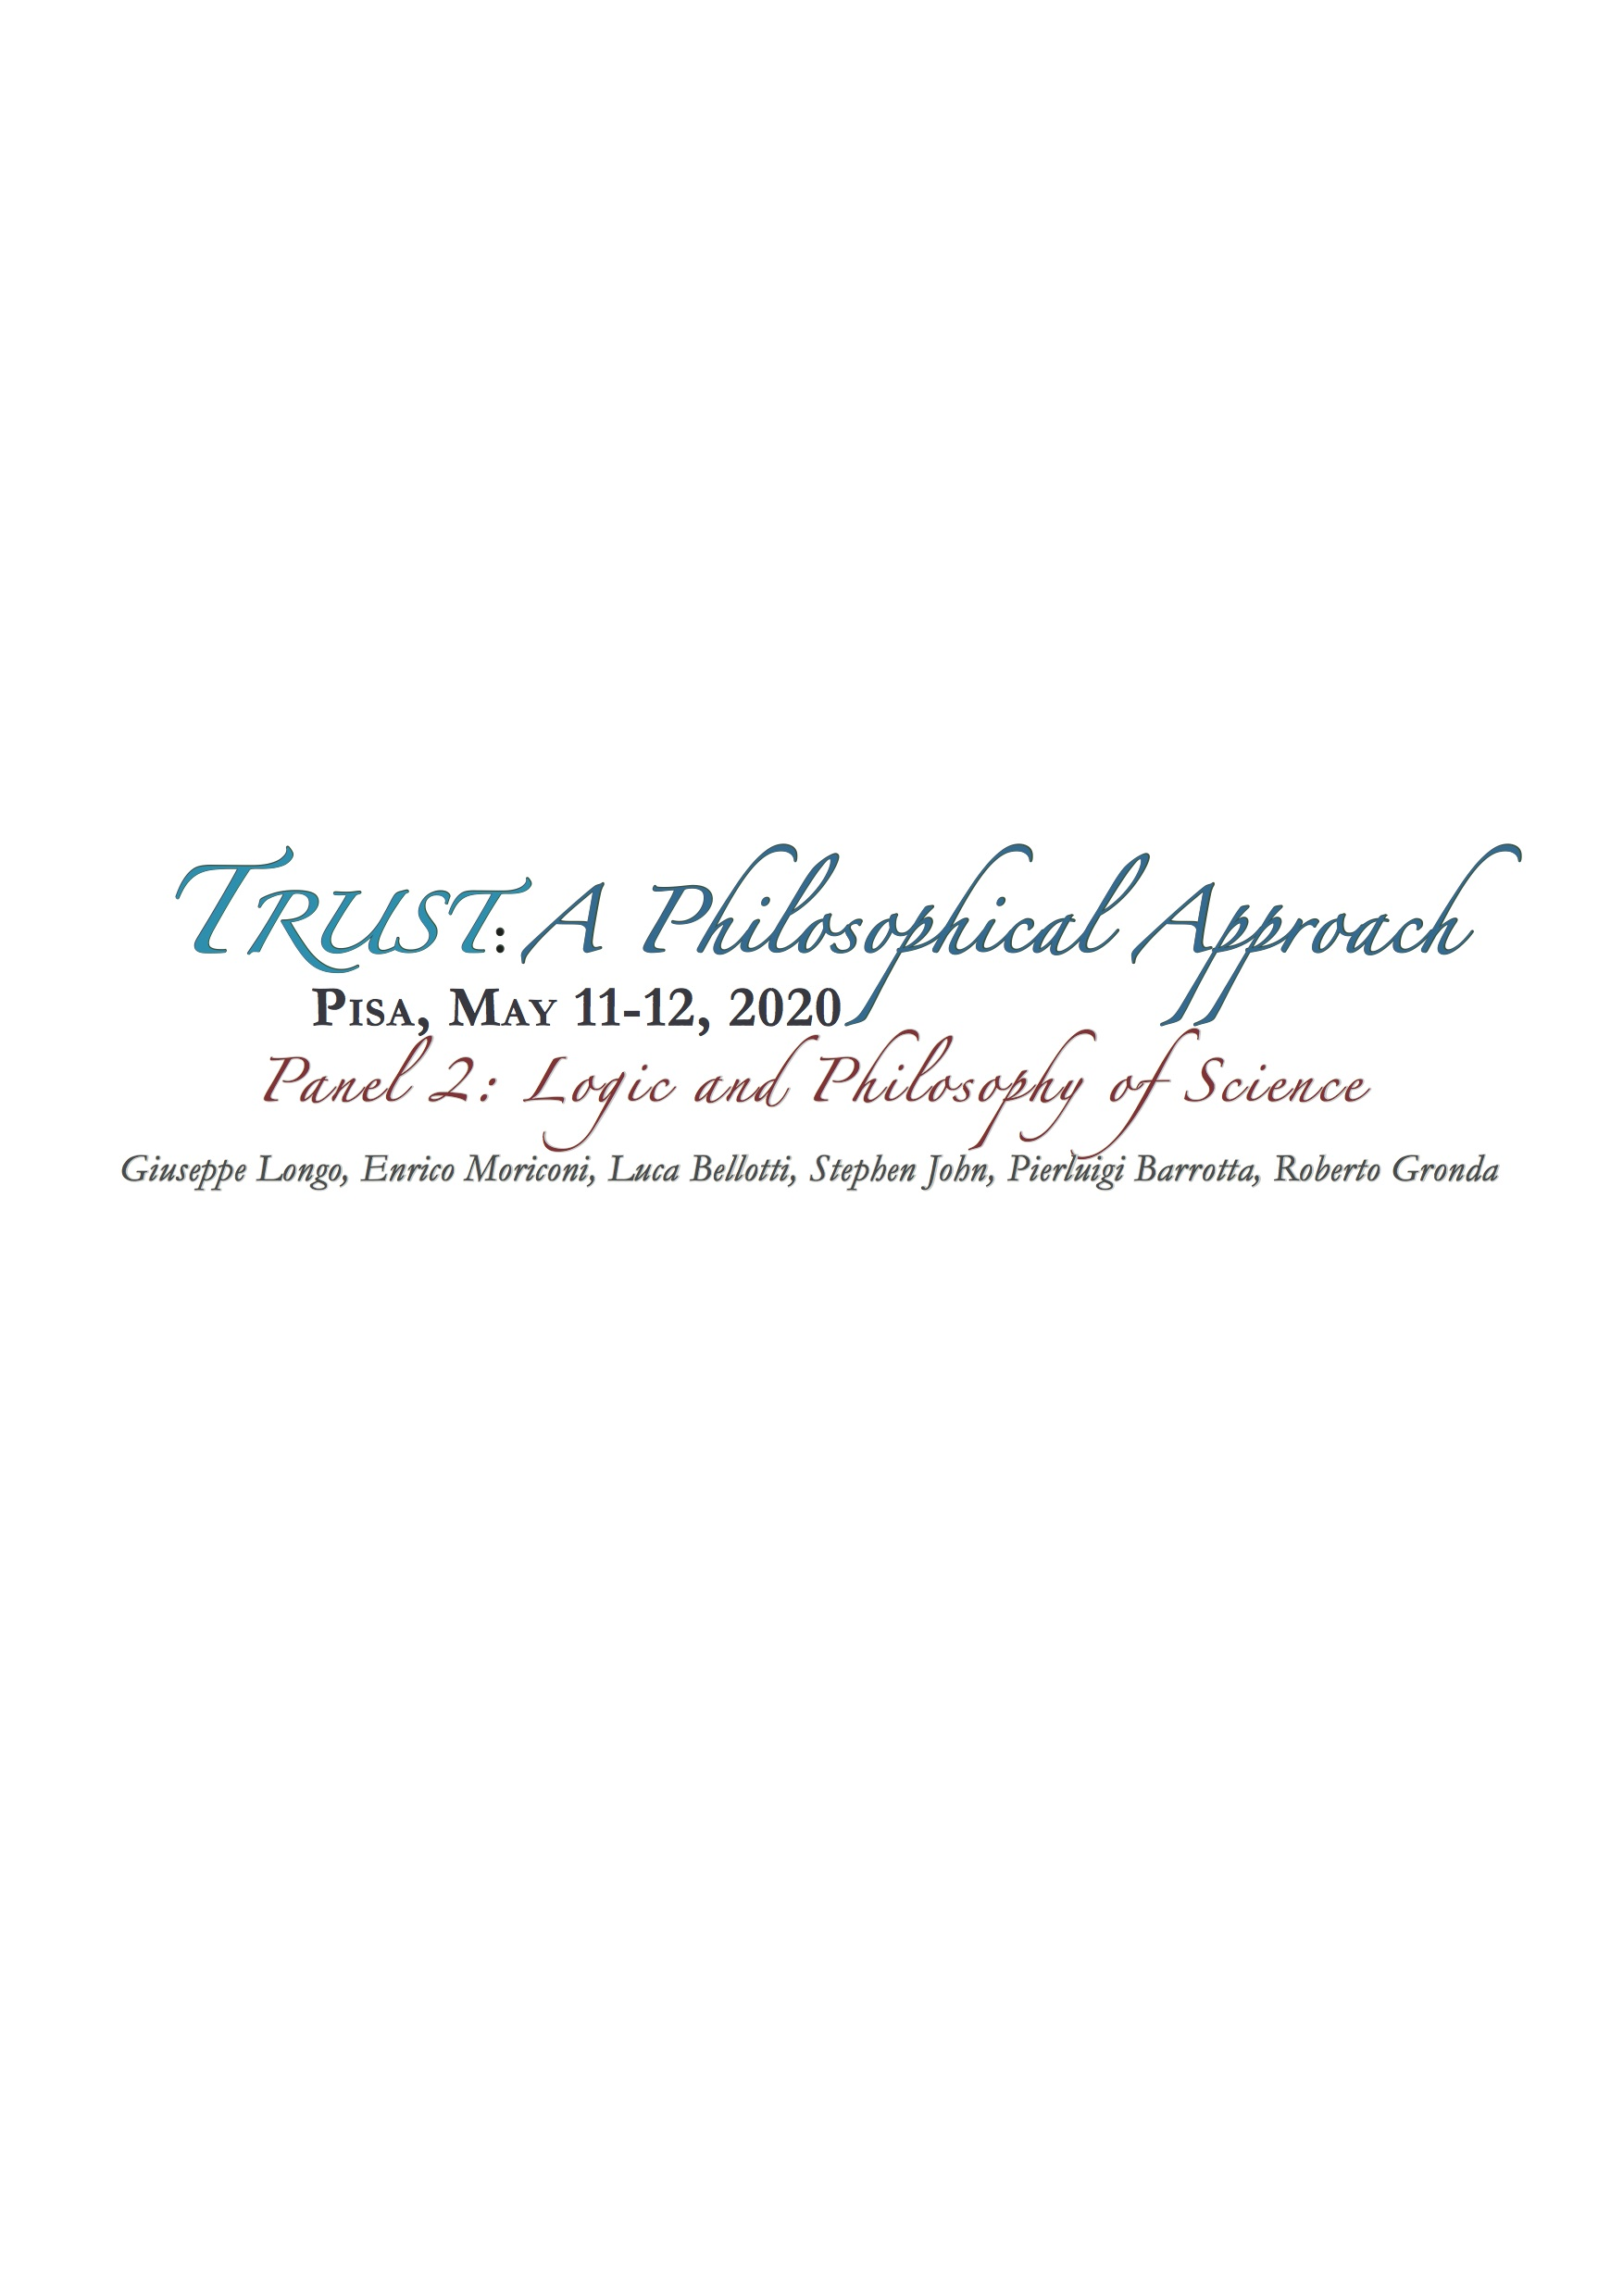 TRUST: A PHILOSOPHICAL APPROACH – PANEL 2